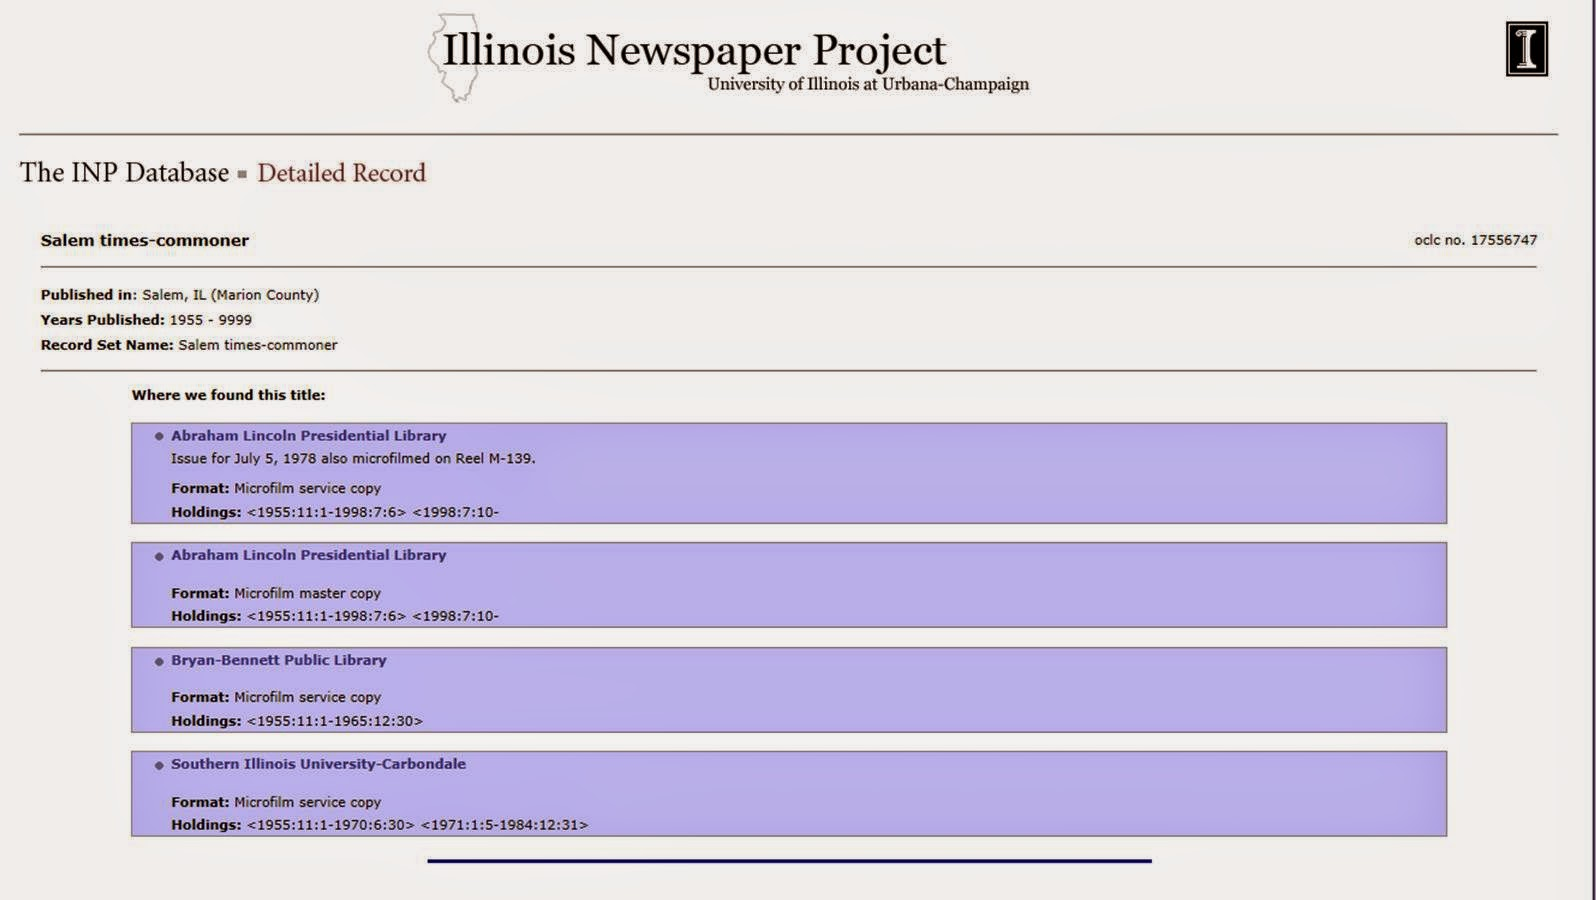 http://www.library.illinois.edu/inp/results_full_public.php?oclc=17556747